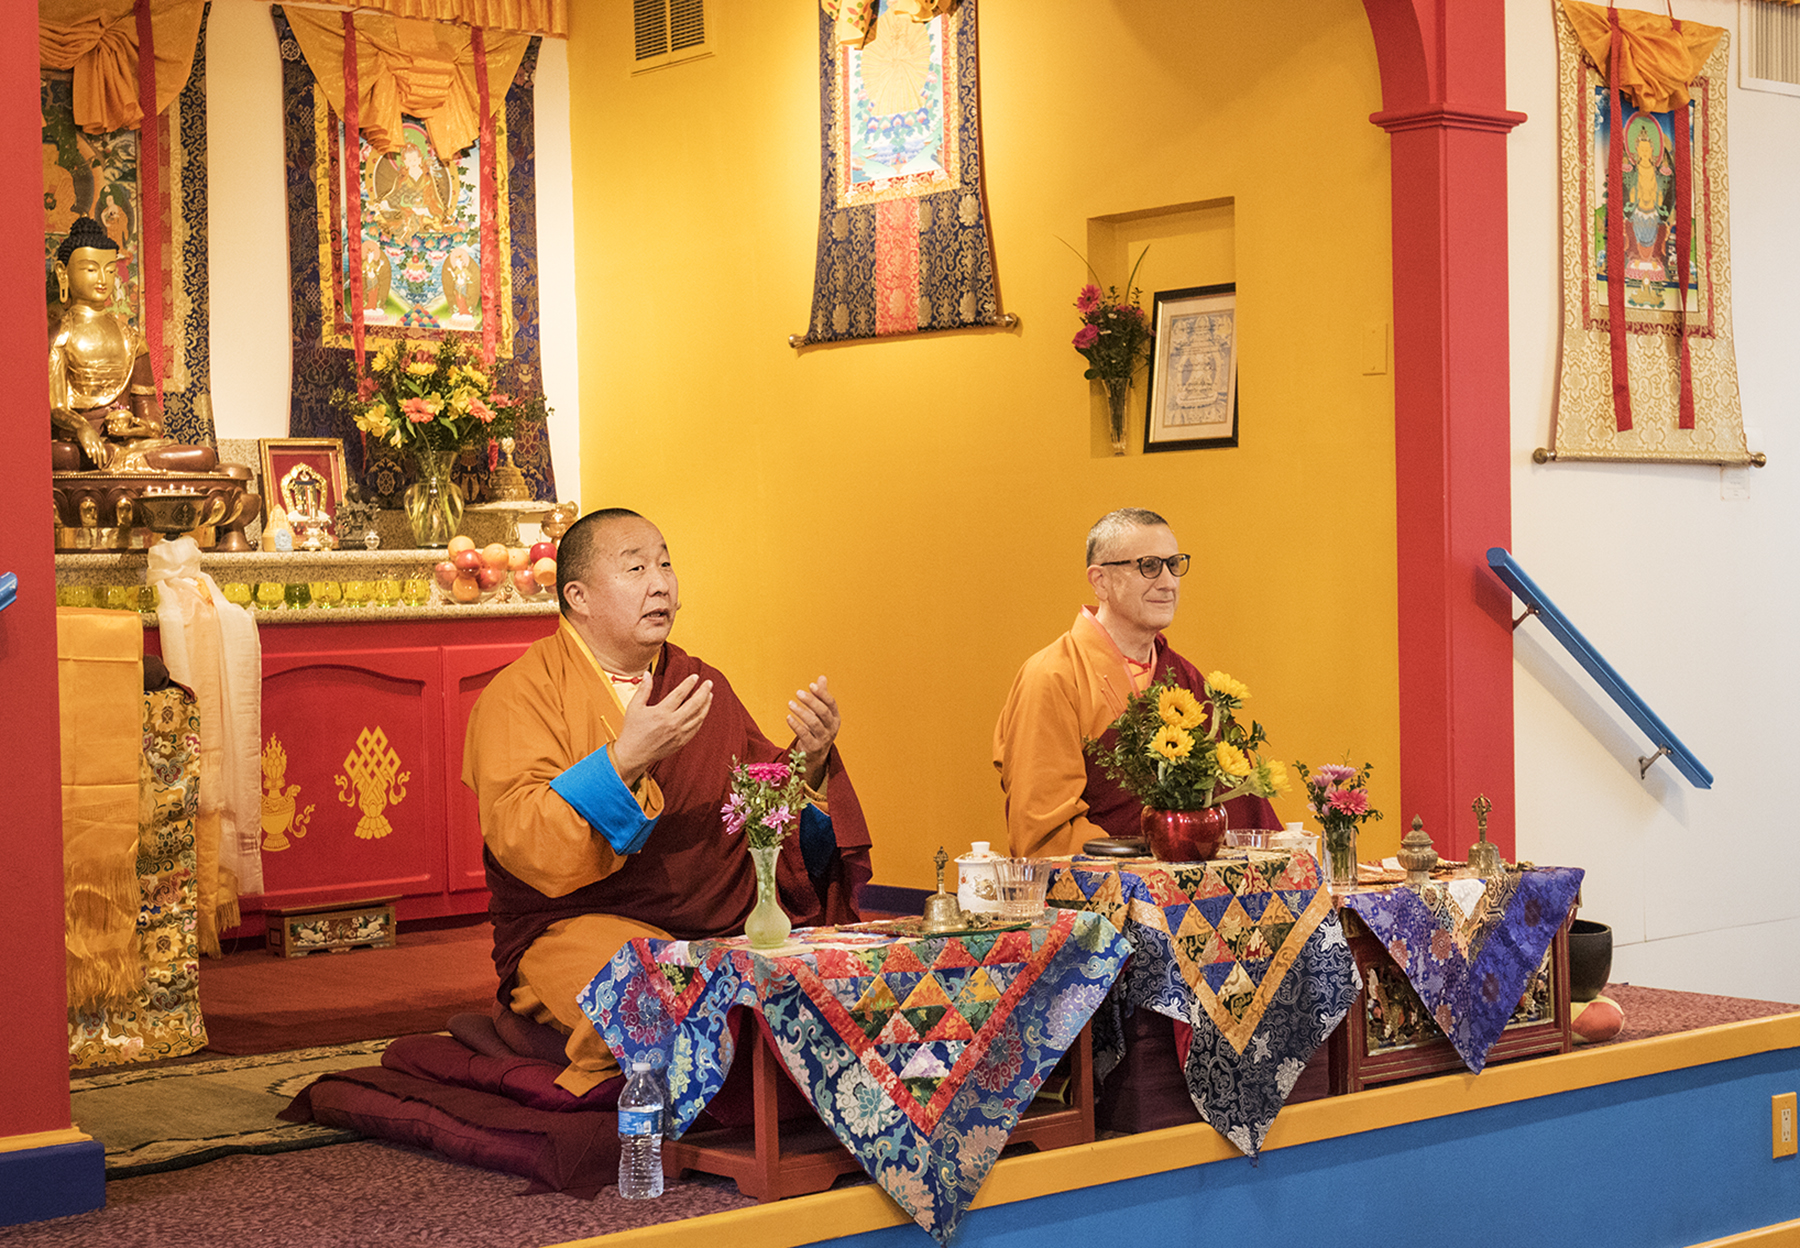 Lama Yeshe Jinpa and Geshe Damchoebaazar Gurjav Lead Losar 2021 / 2148 Celebration at do nga dargey temple